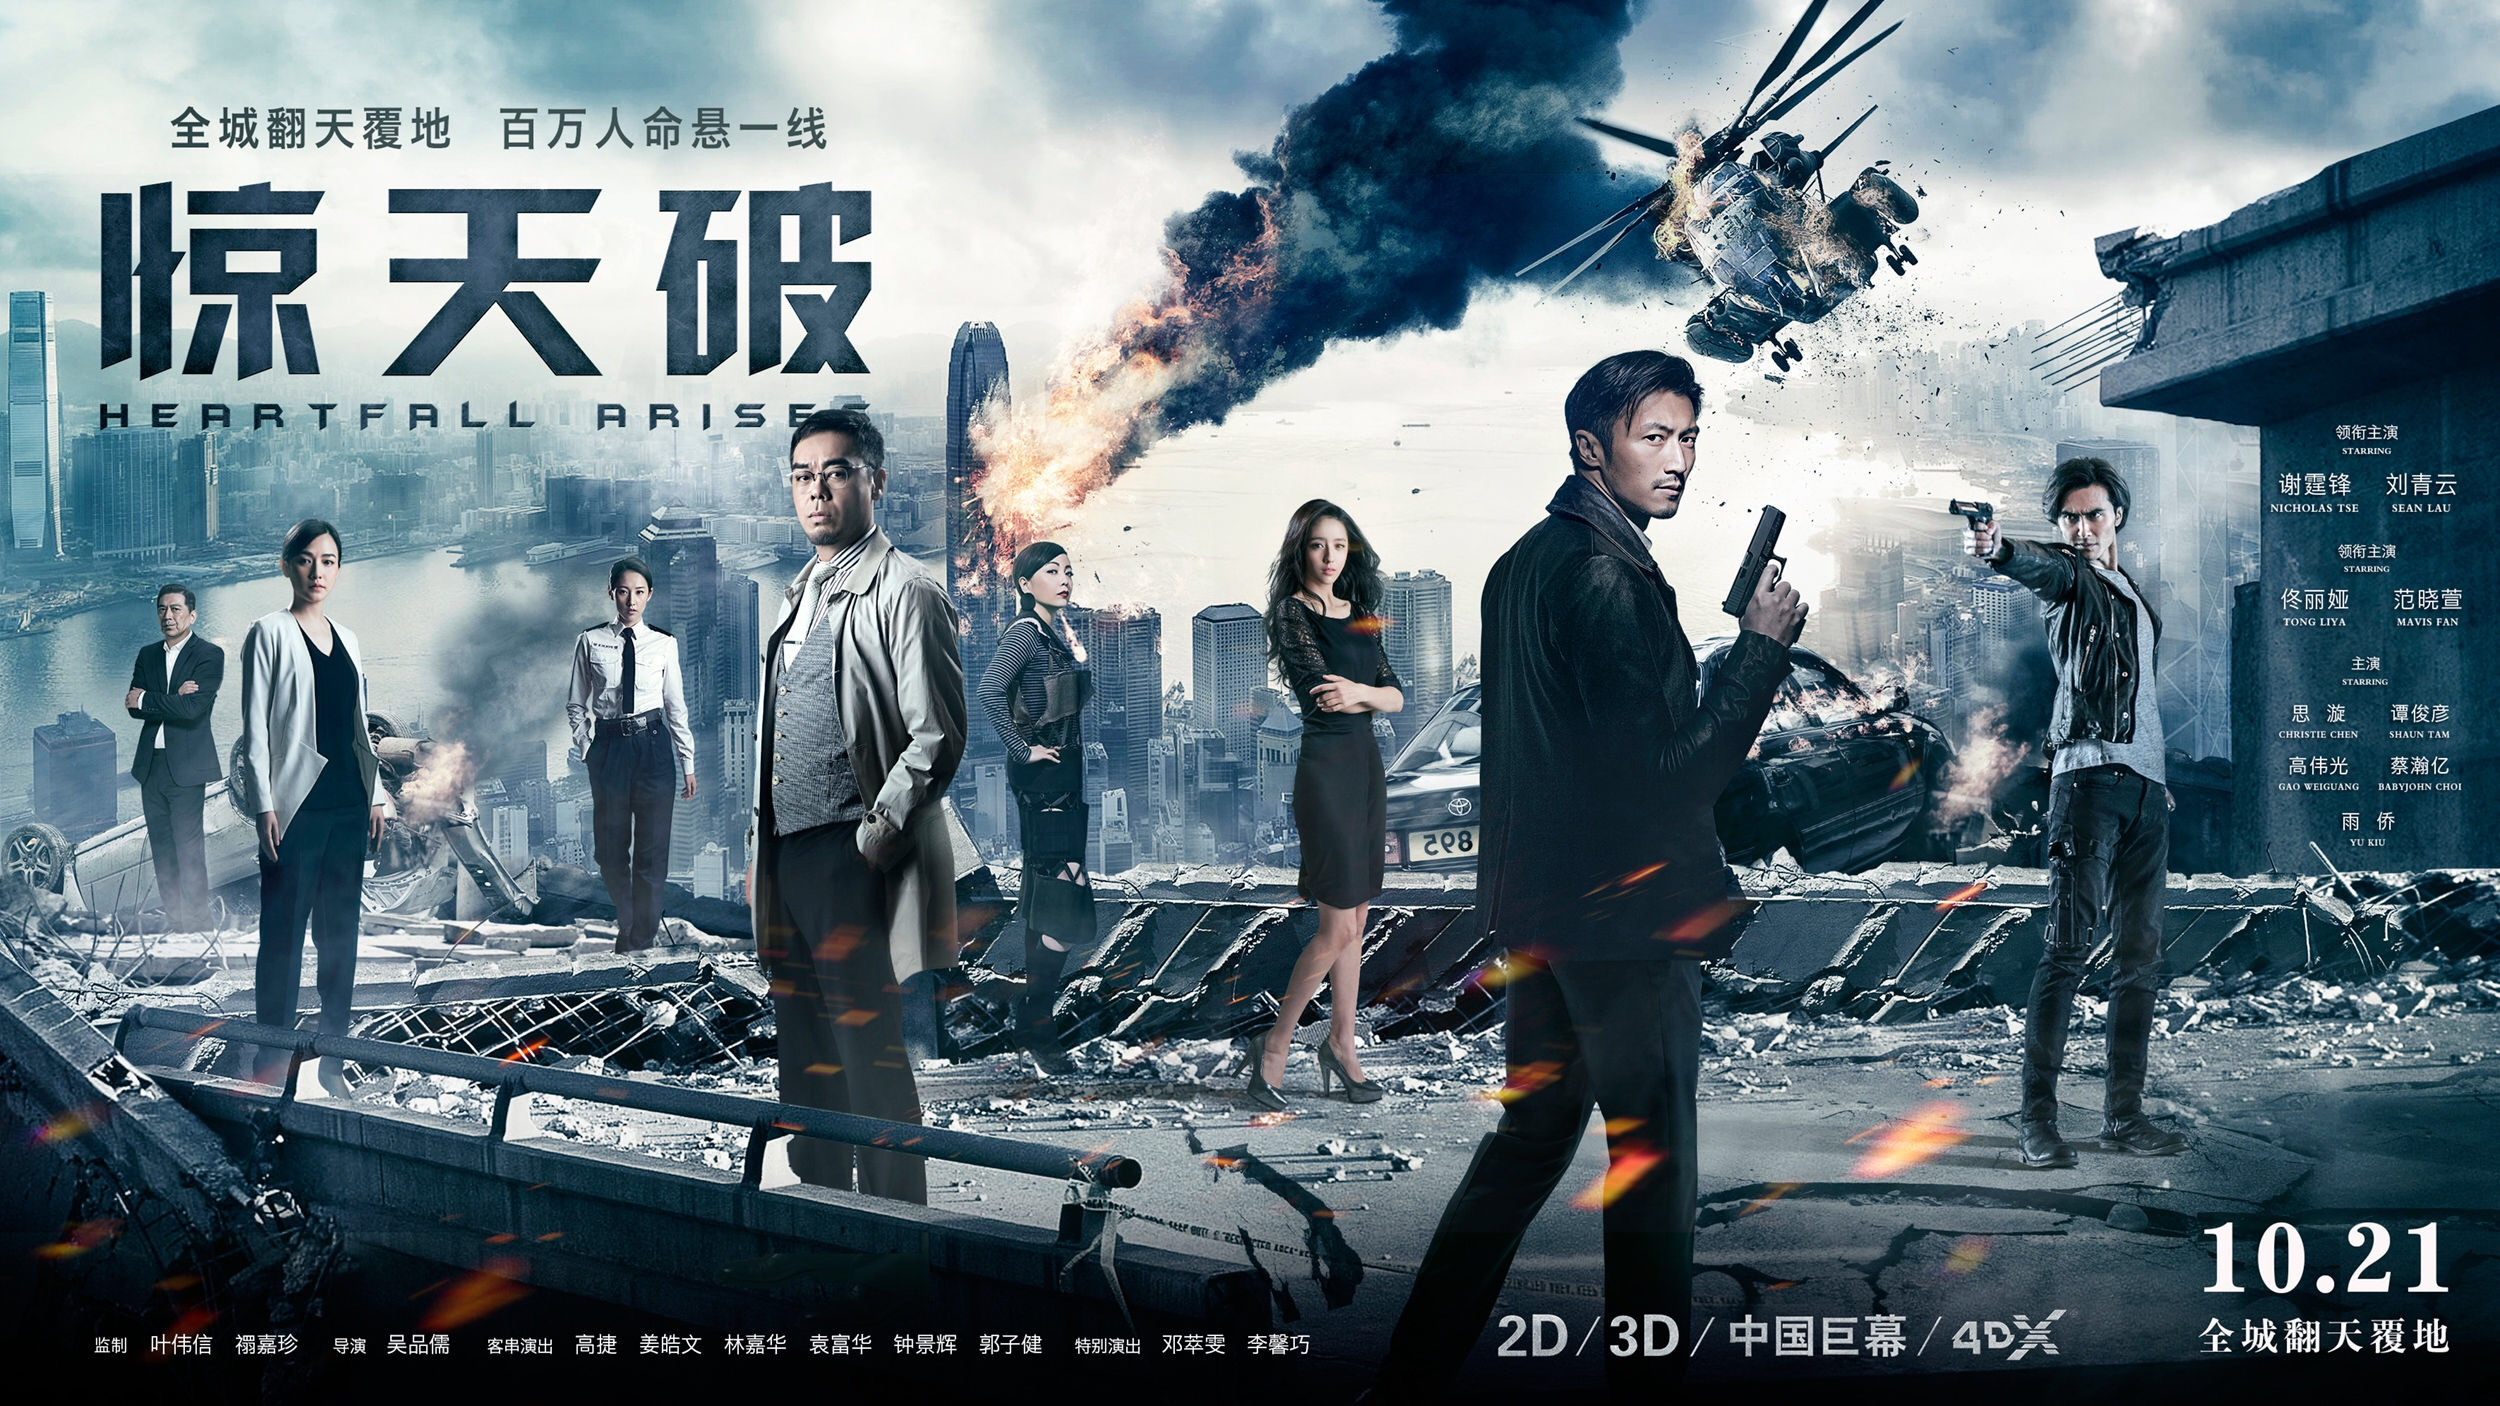 Embarrassing, Demeaning, Stupid And Ridiculous Are The First Words That  Come To Mind After Viewing Quite Possibly The Worst Chinese Film Of The  Year.